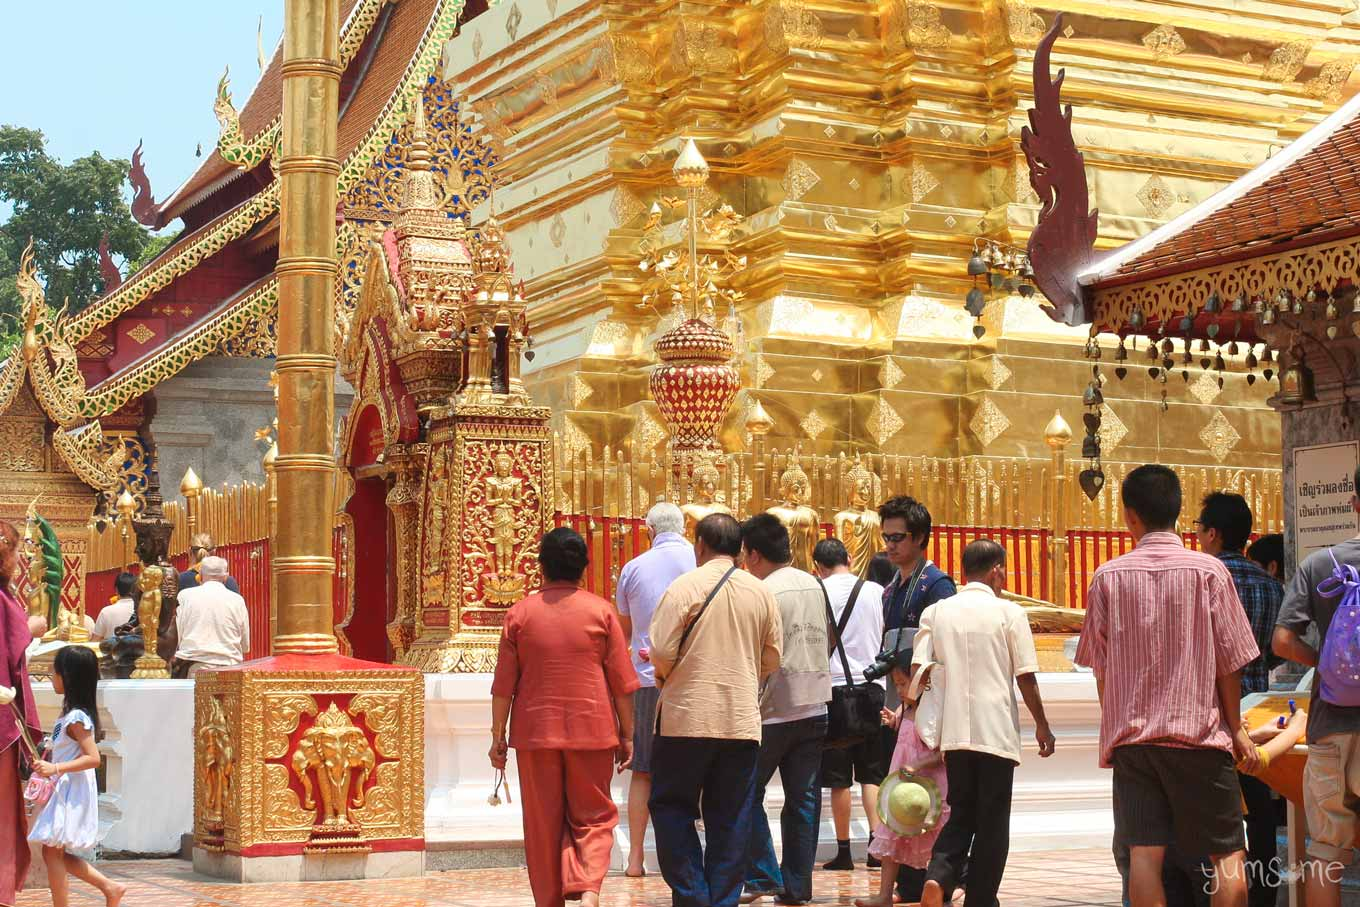 The base of the chedi at Wat Doi Suthep, with people milling around.